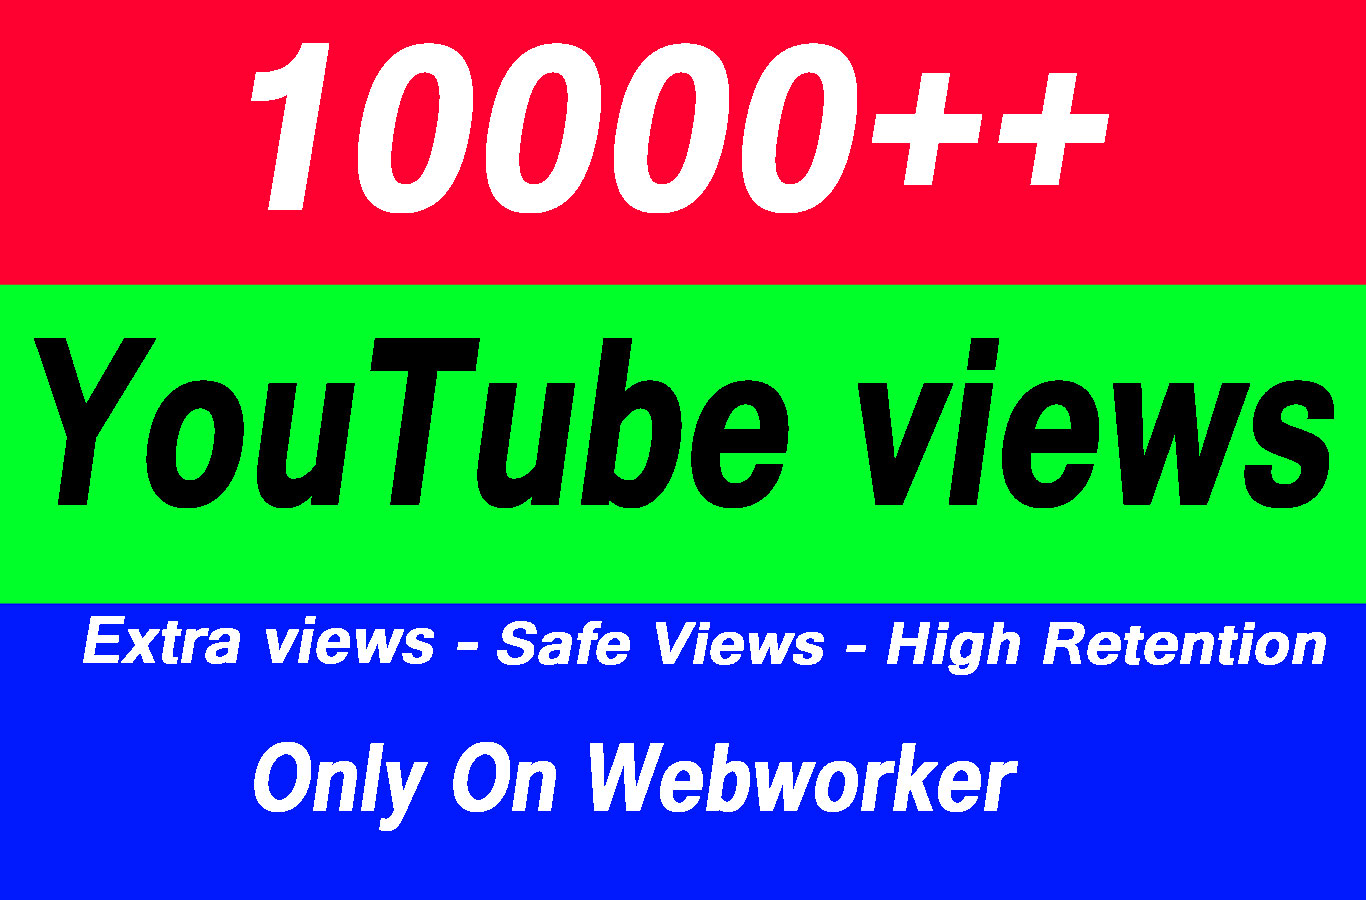 10000 High Quality Views with choice Extra service 1000, 2000, 5000,10000, 20000, 20k 25000, 25k and 50,000, 50k, 100,000 100k, 250k, 500k Views